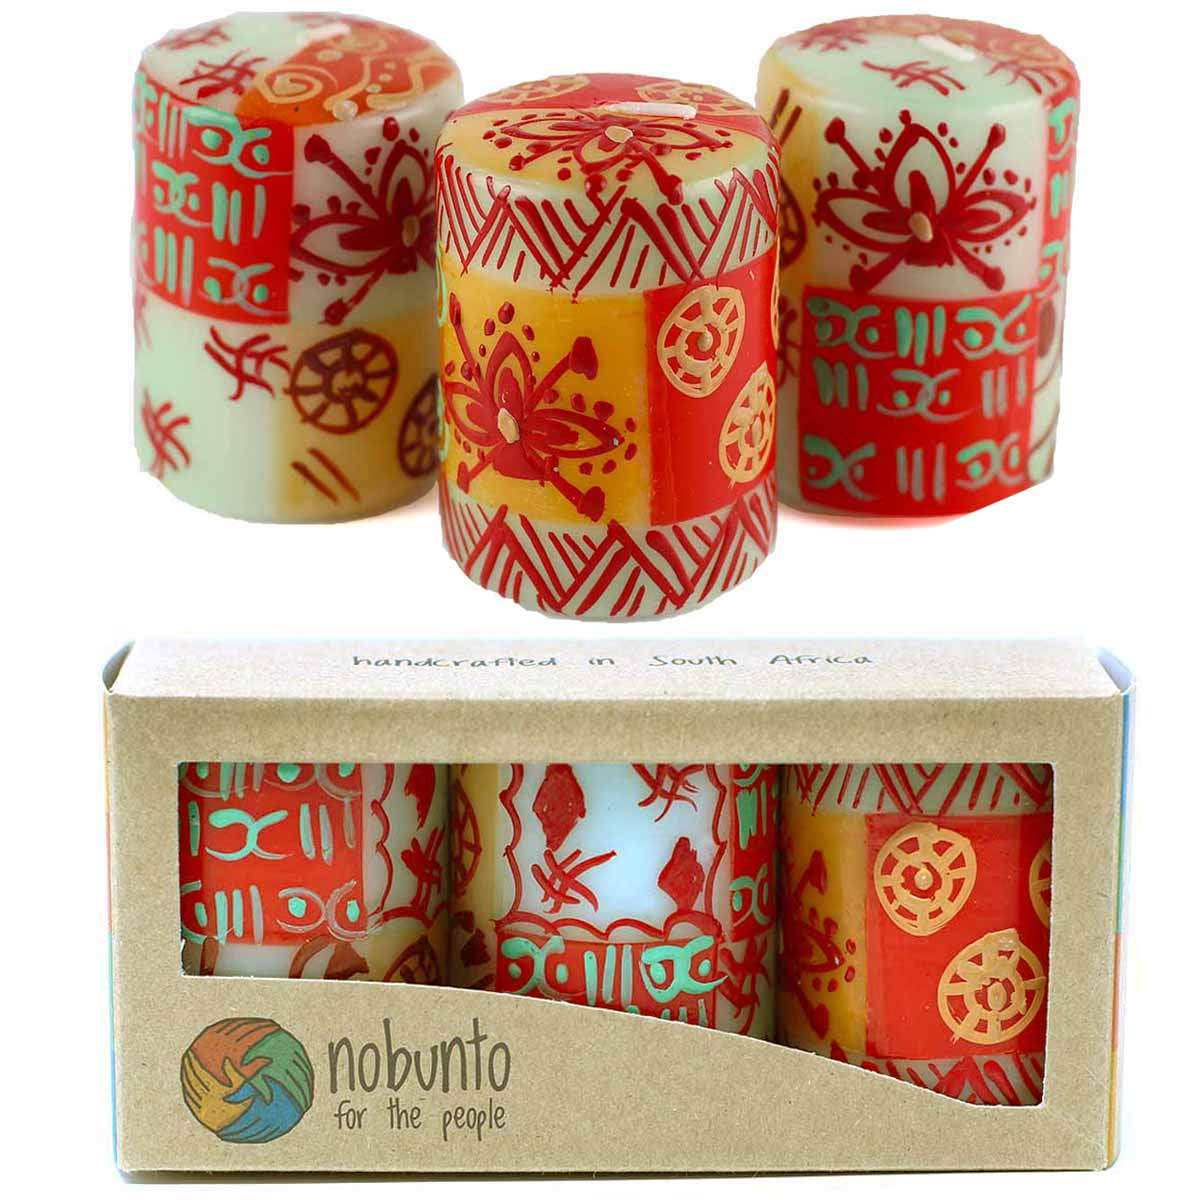 Unscented Hand-Painted Votive Candles, Boxed Set of 3 (Owoduni Design)